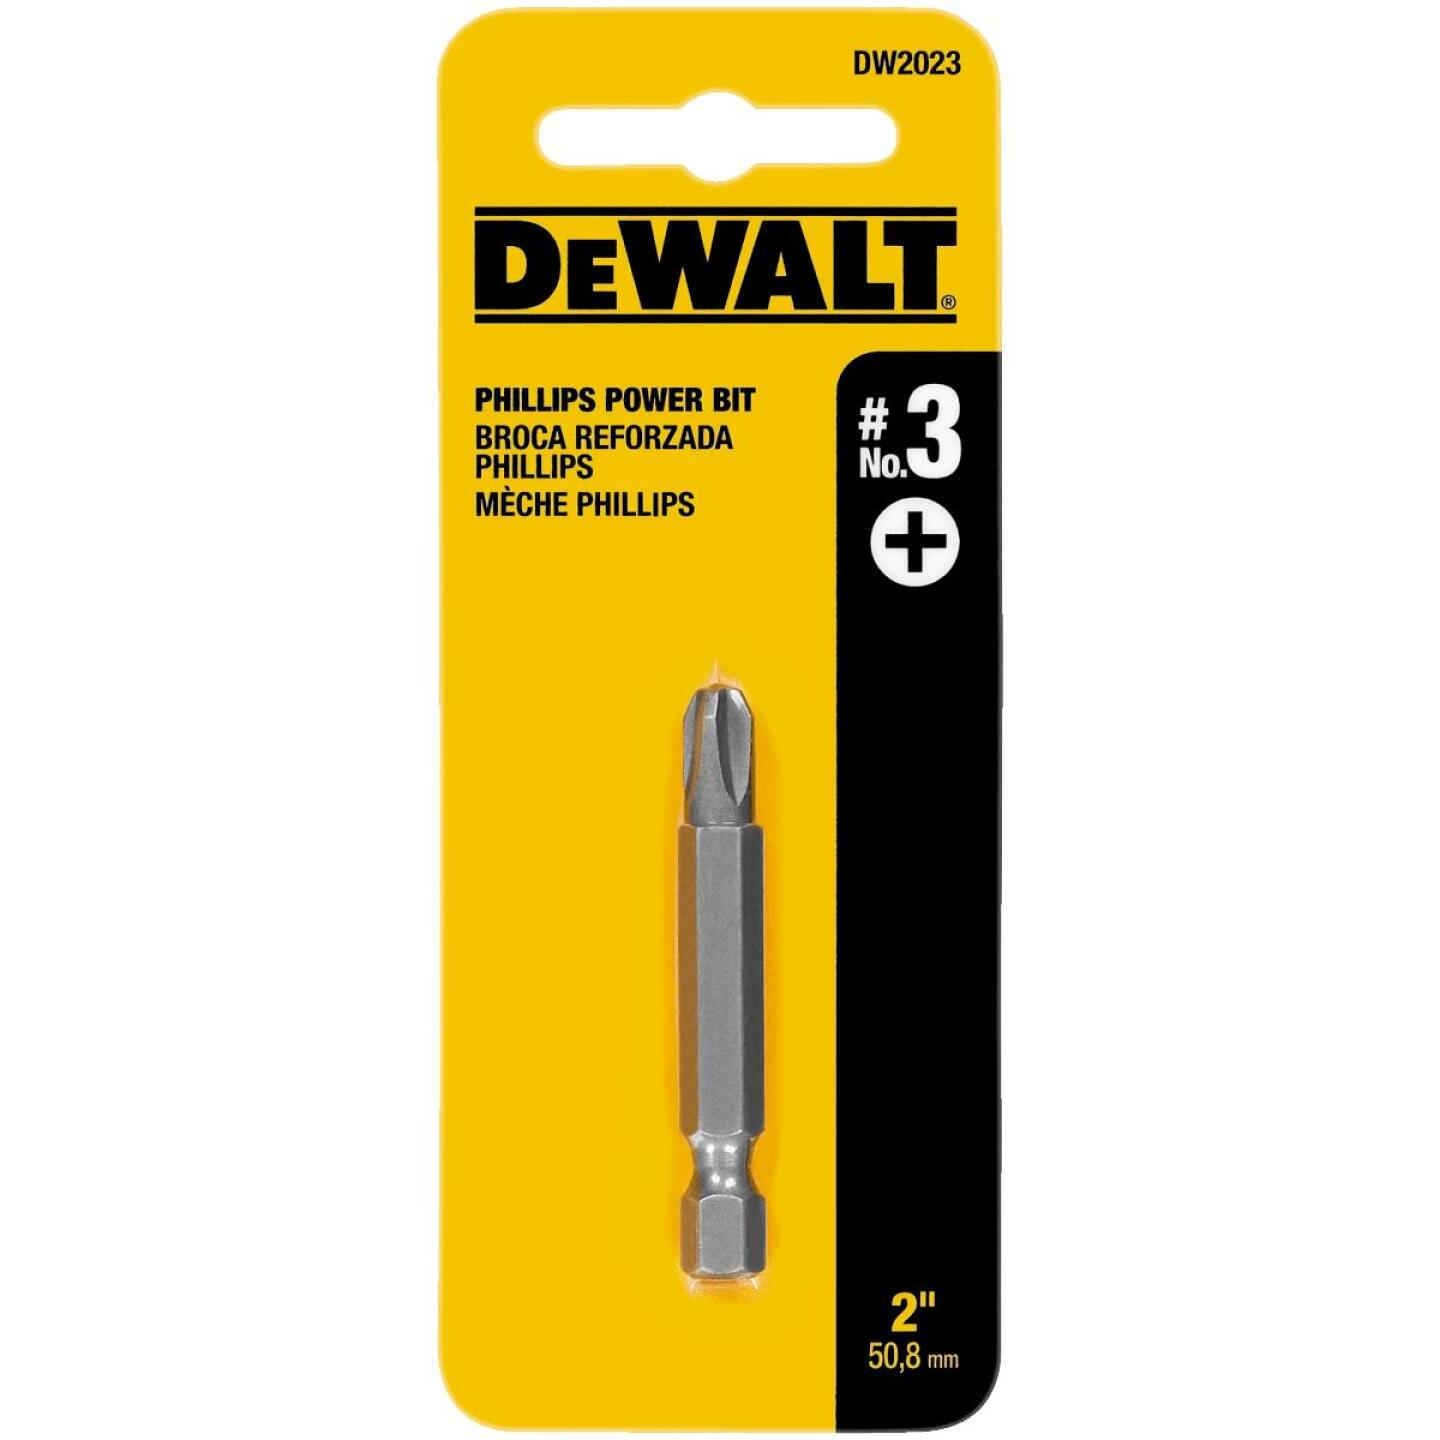 DeWalt Phillips #3 2 In. Power Screwdriver Bit Image 1